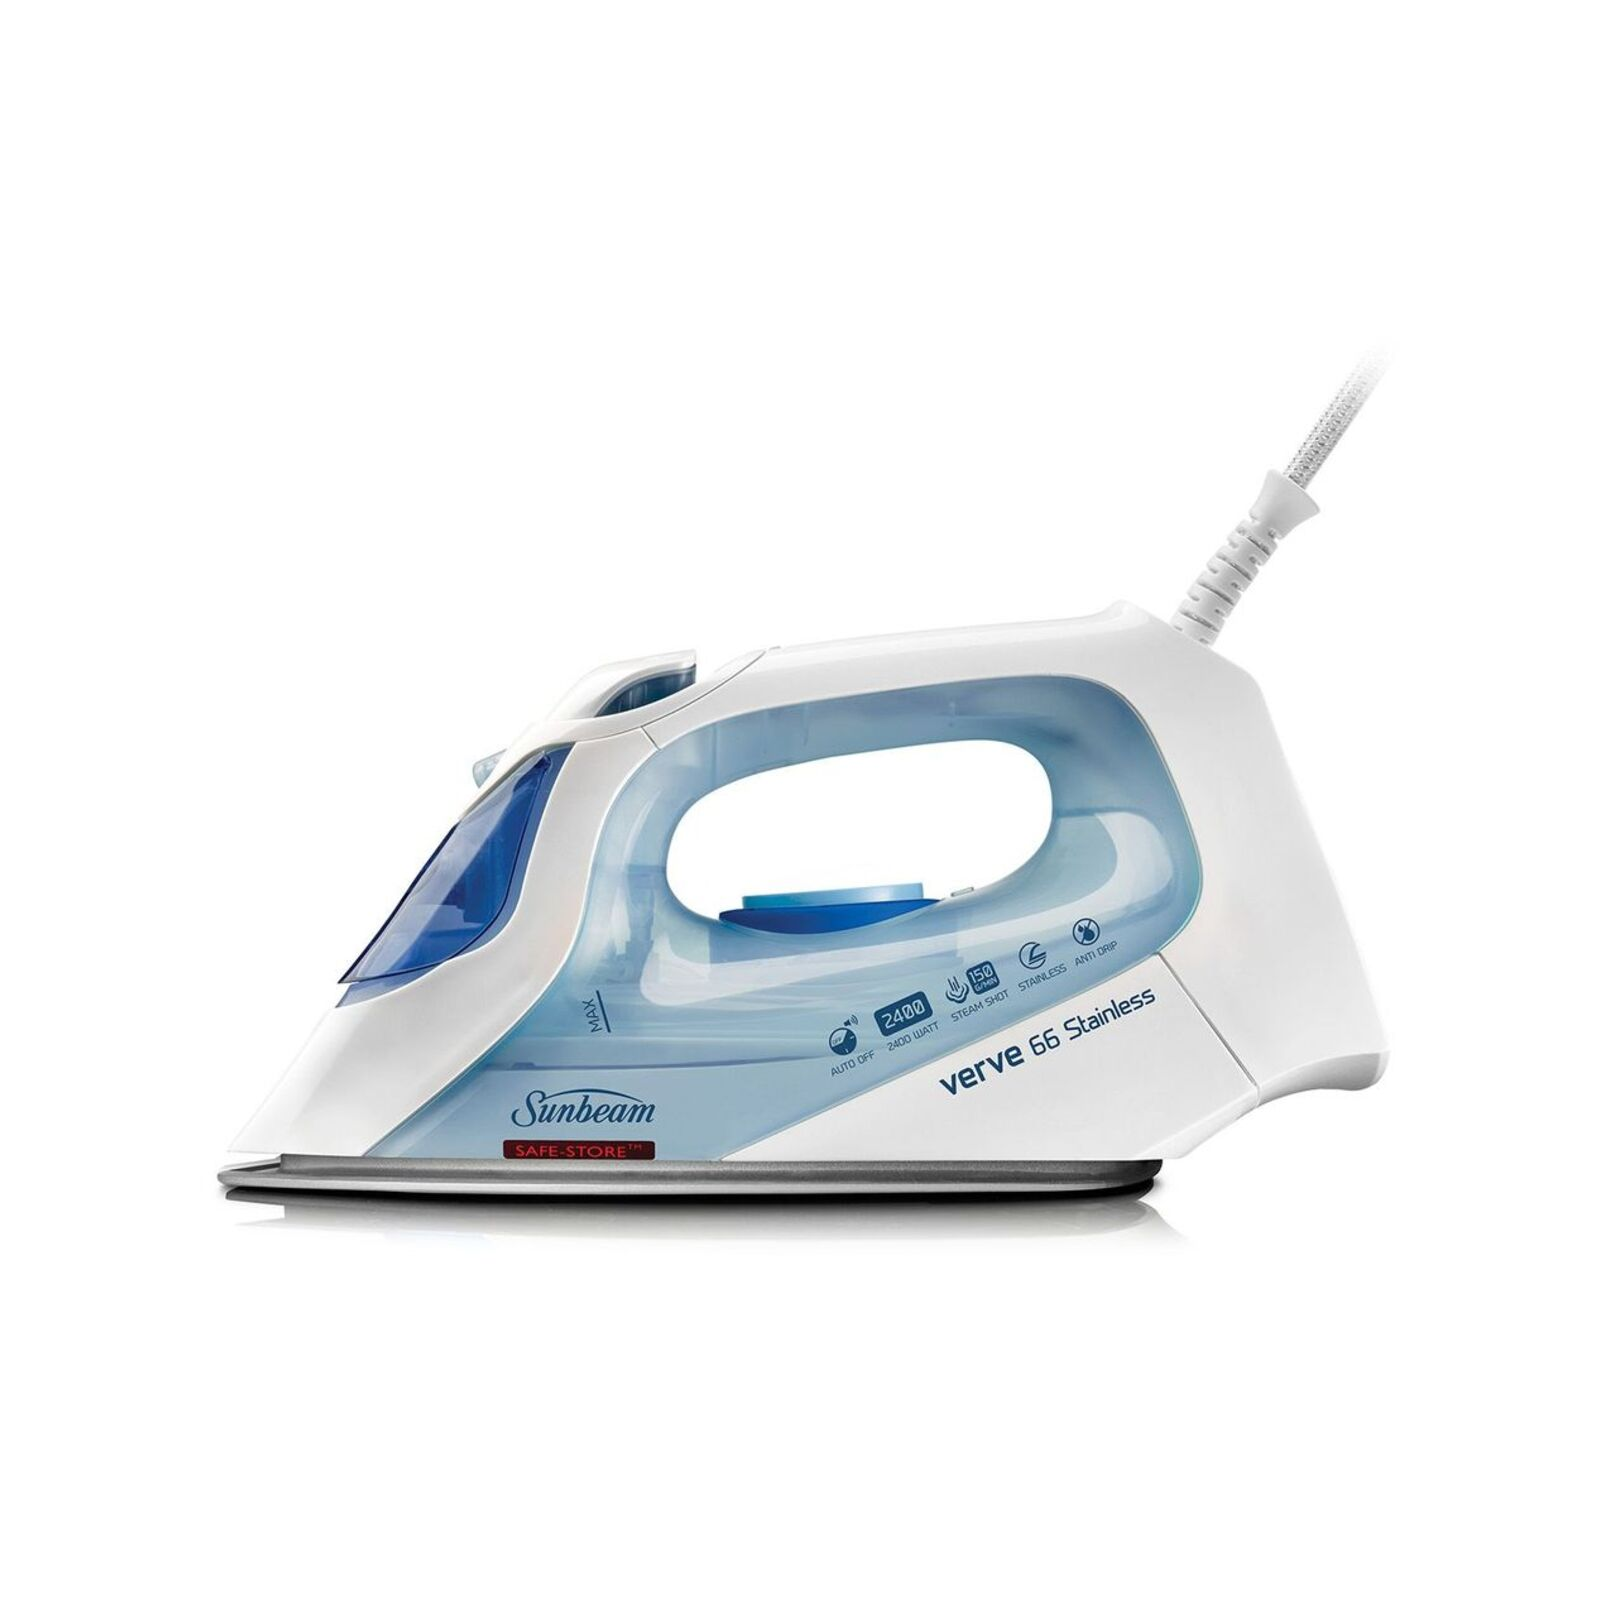 Sunbeam Verve 66 Stainless - Shot & Spray Iron With A/Off